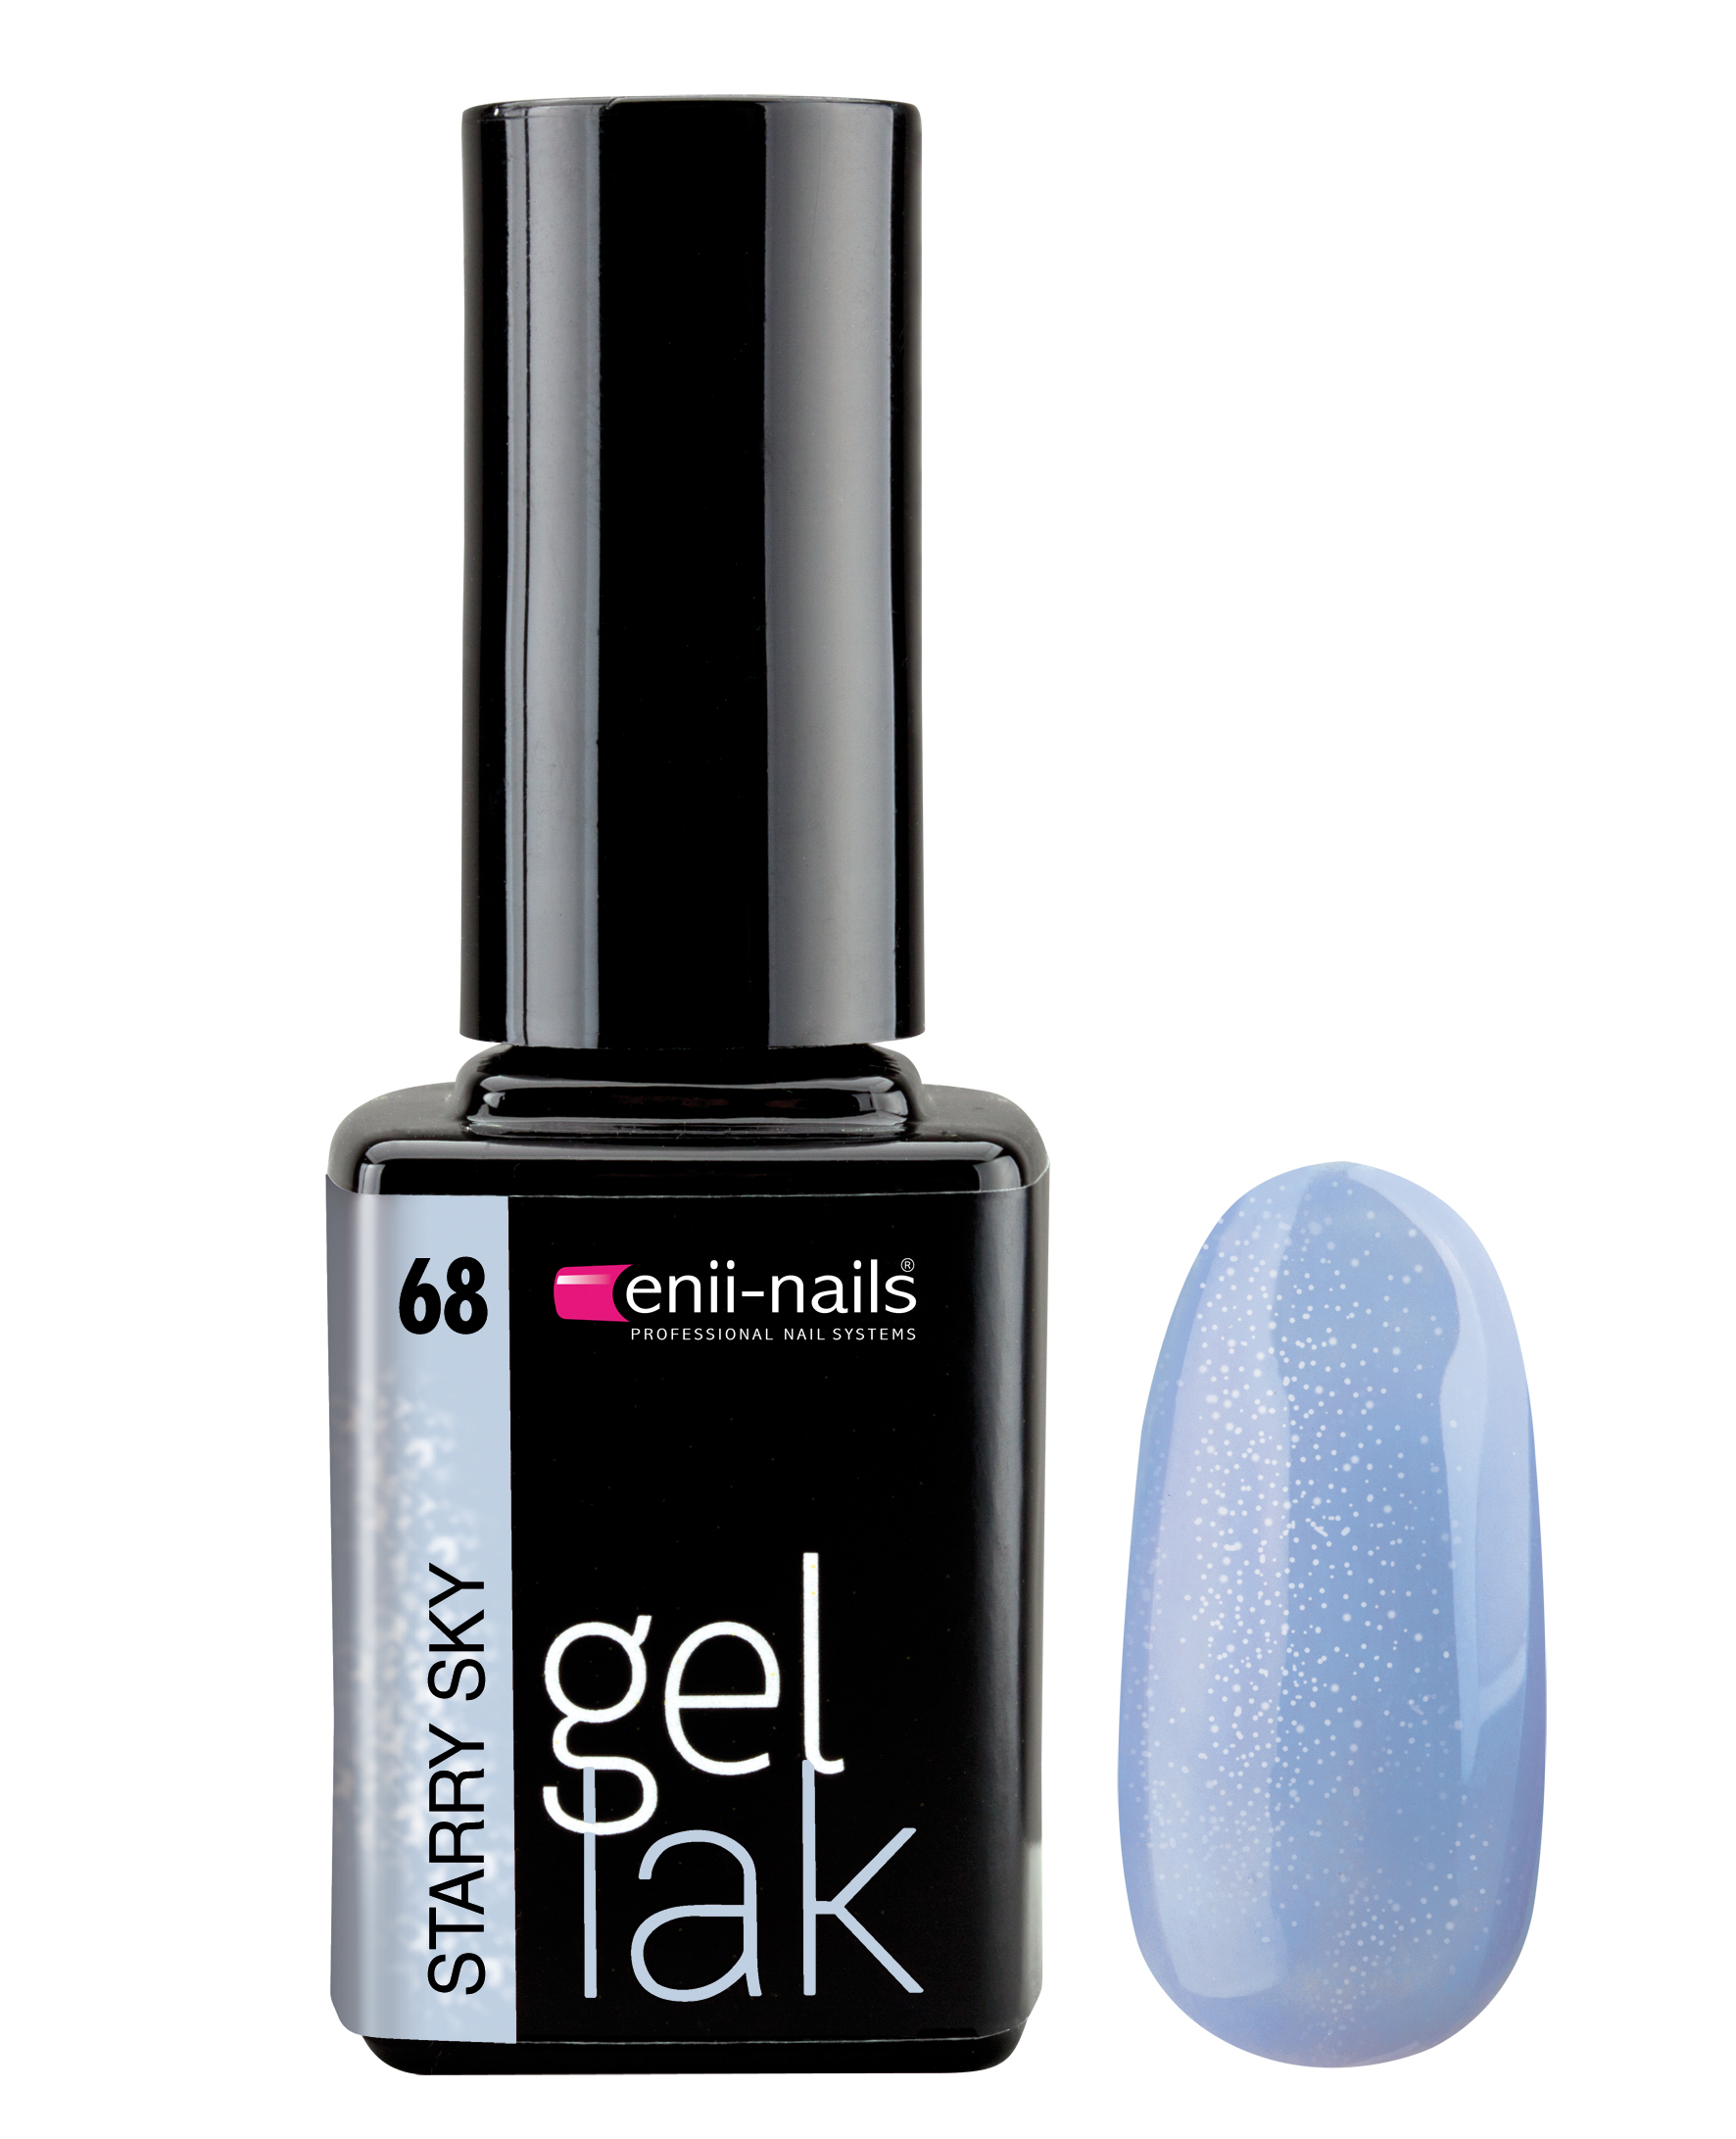 ENII-NAILS Gel lak 11 ml - Starry sky